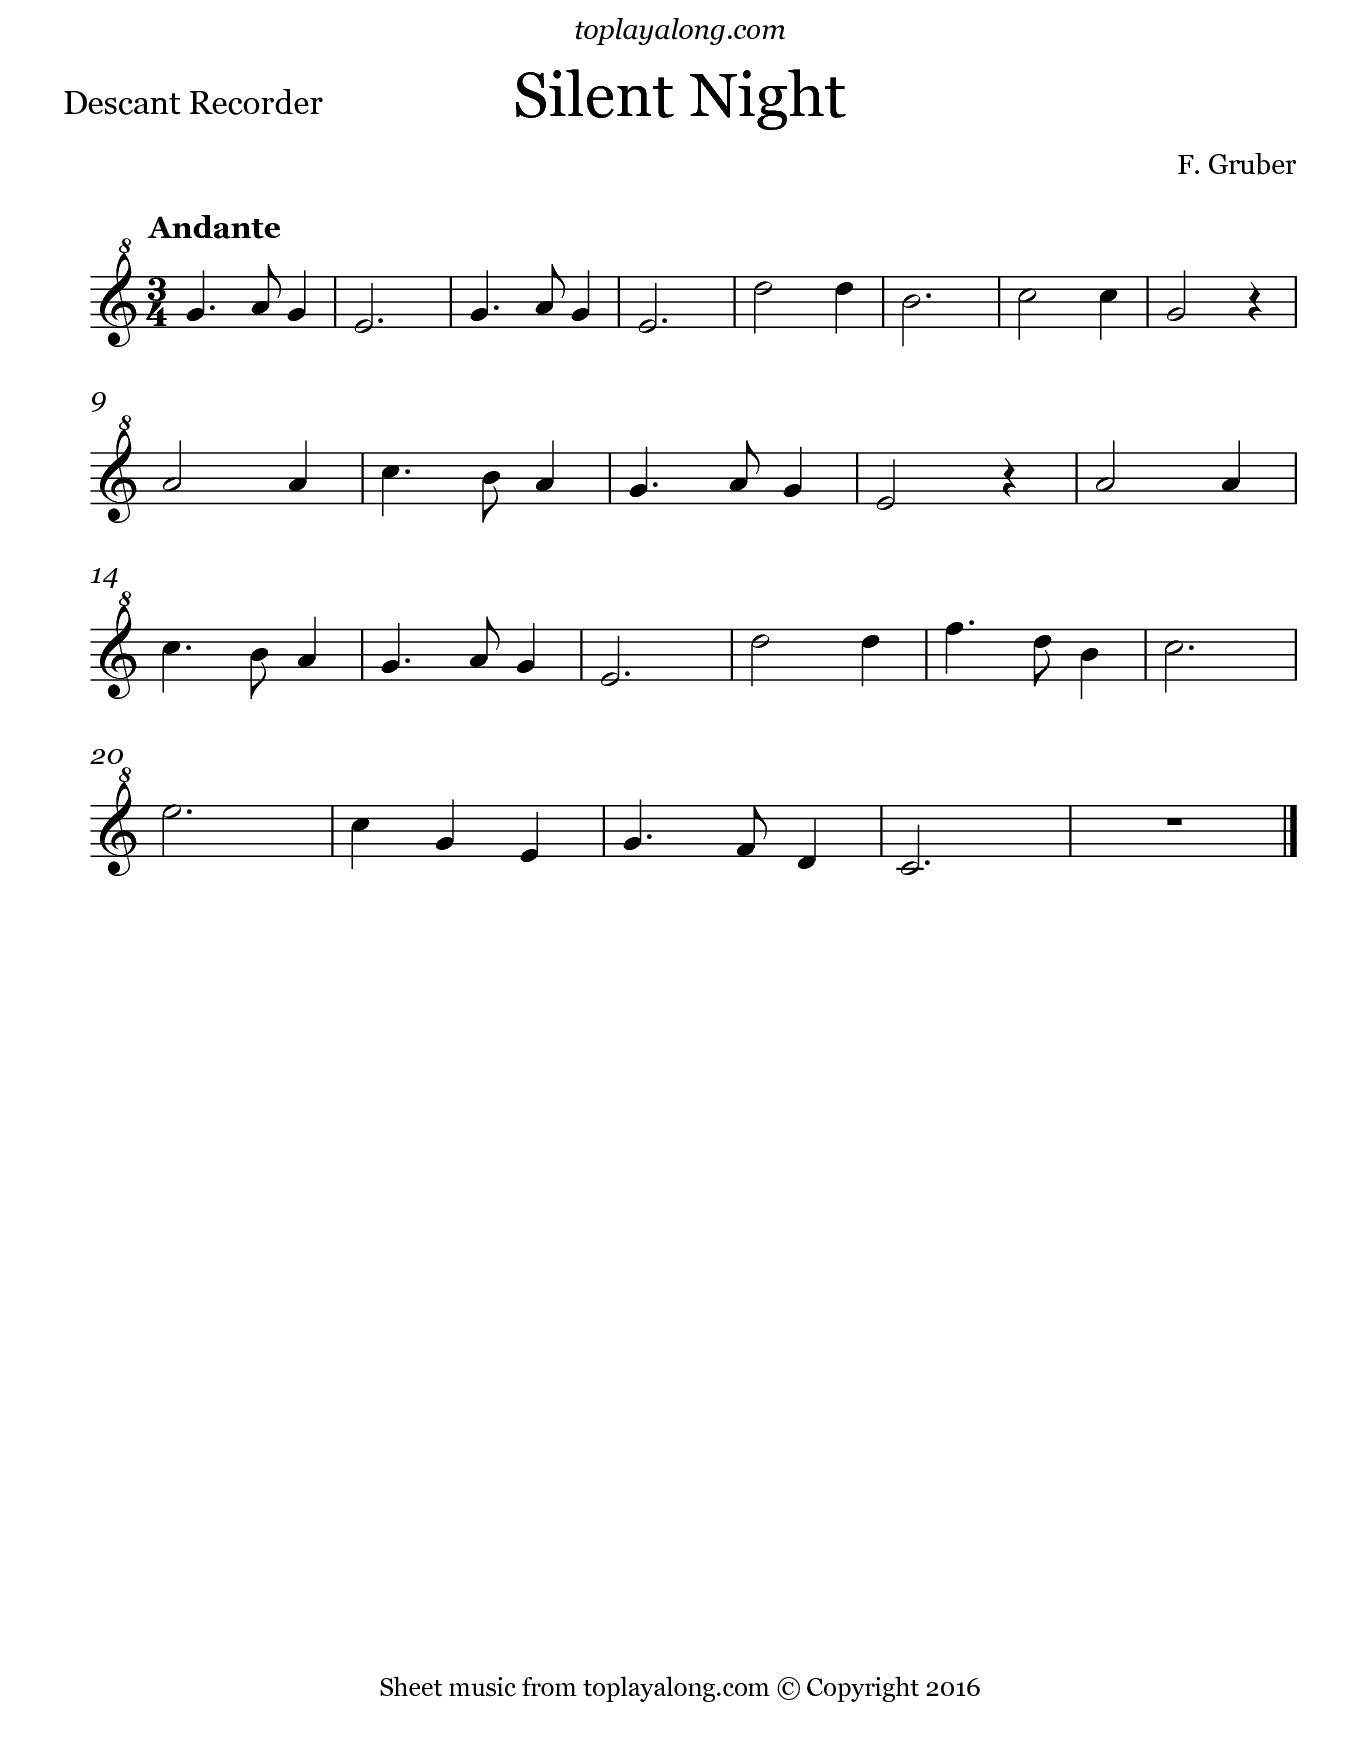 Silent Night by Gruber. Sheet music for Recorder, page 1.